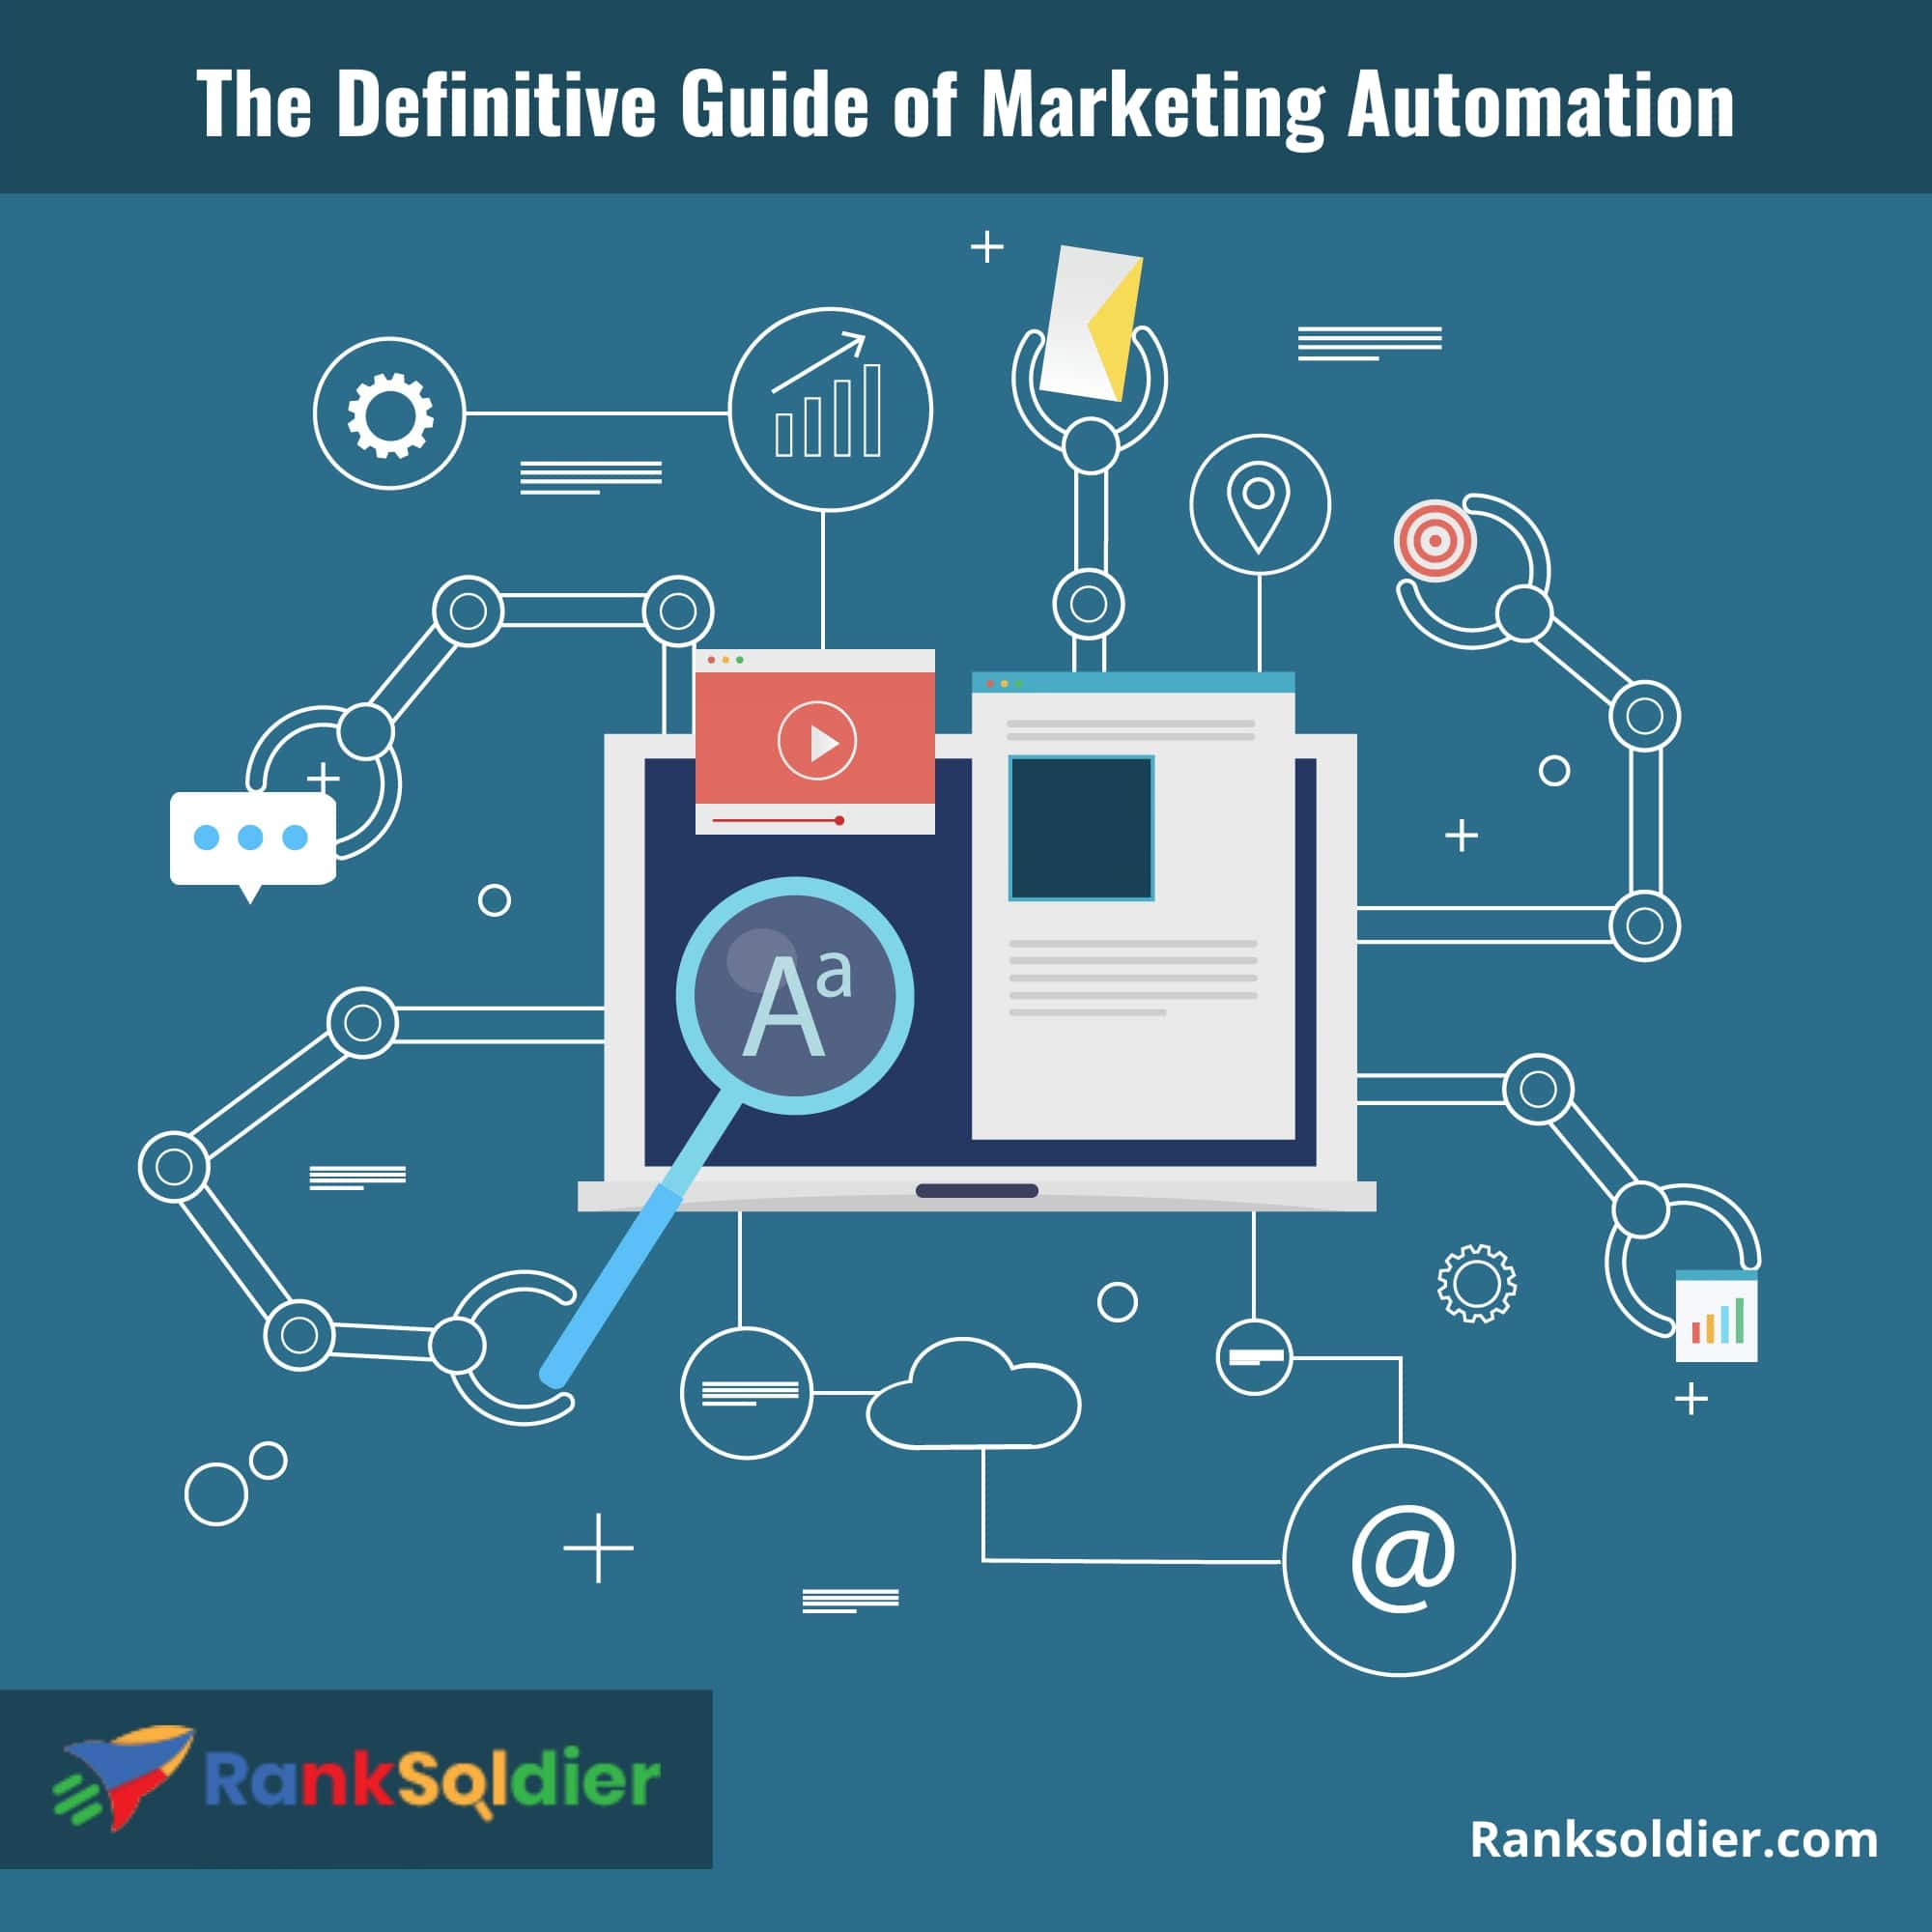 The Definitive Guide of Marketing Automation